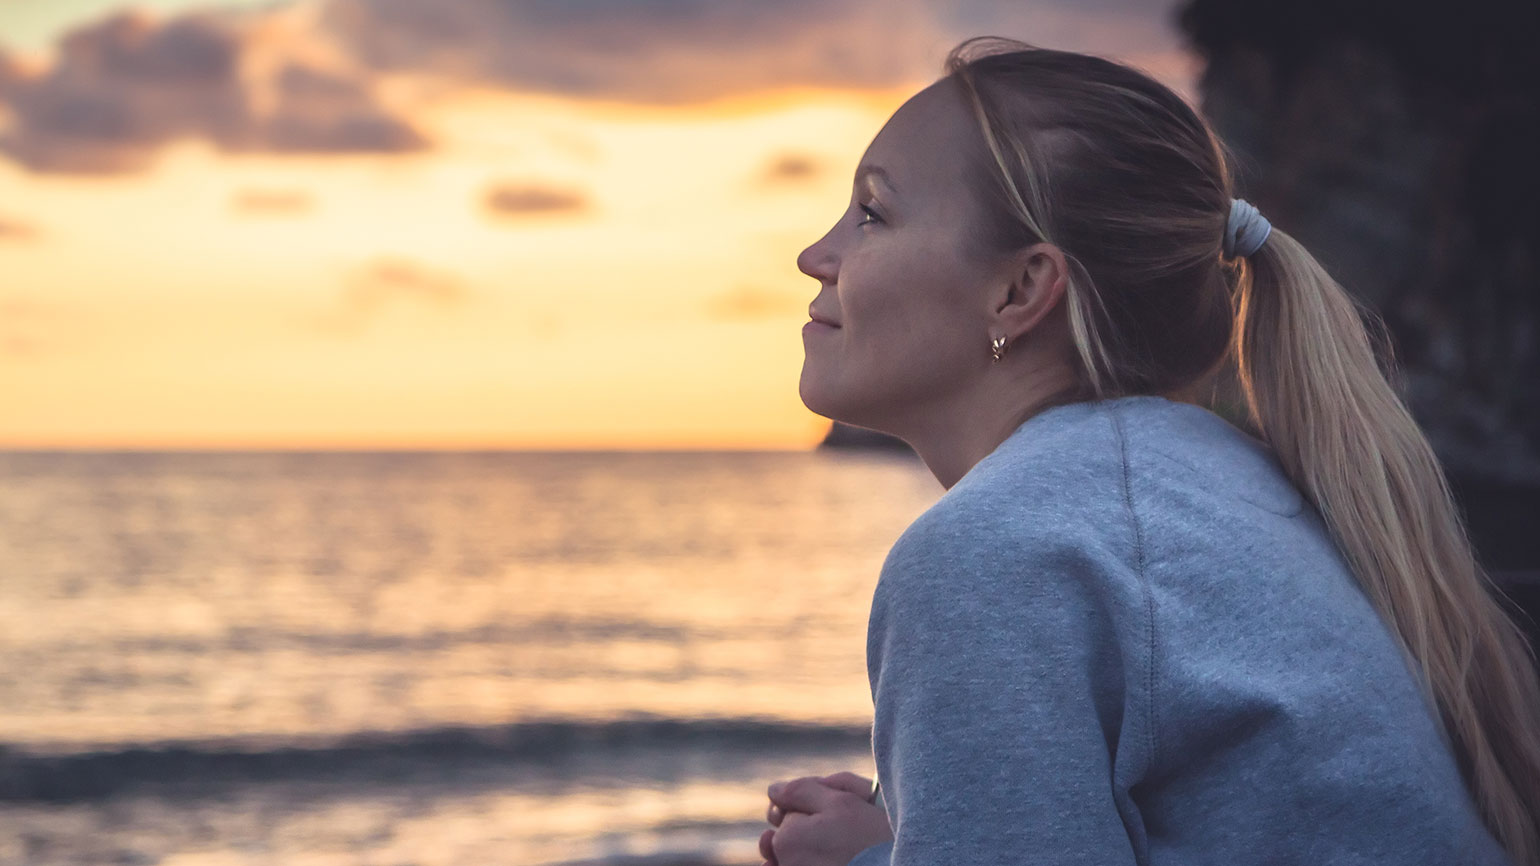 A woman gazes contentedly out at the ocean